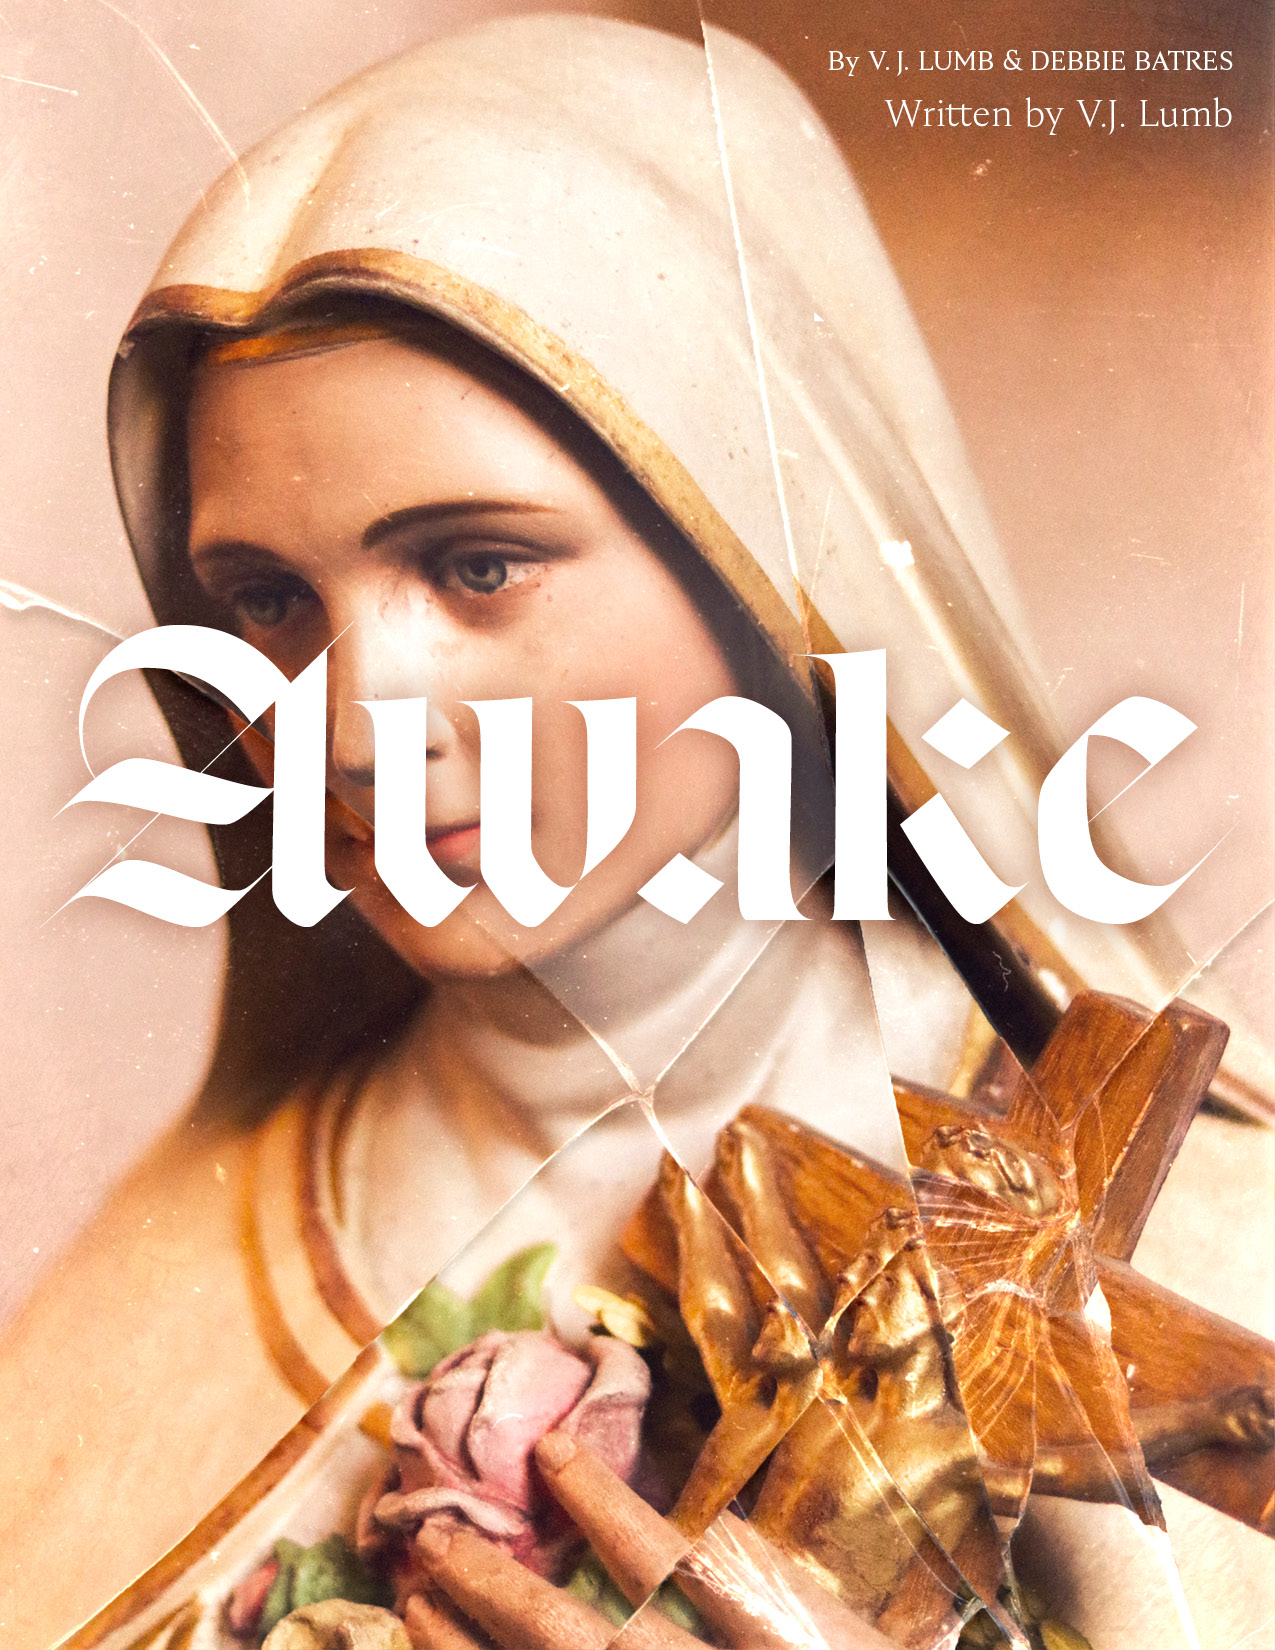 Virgin Mary stature behind cracked glass and modern black letter title treatment